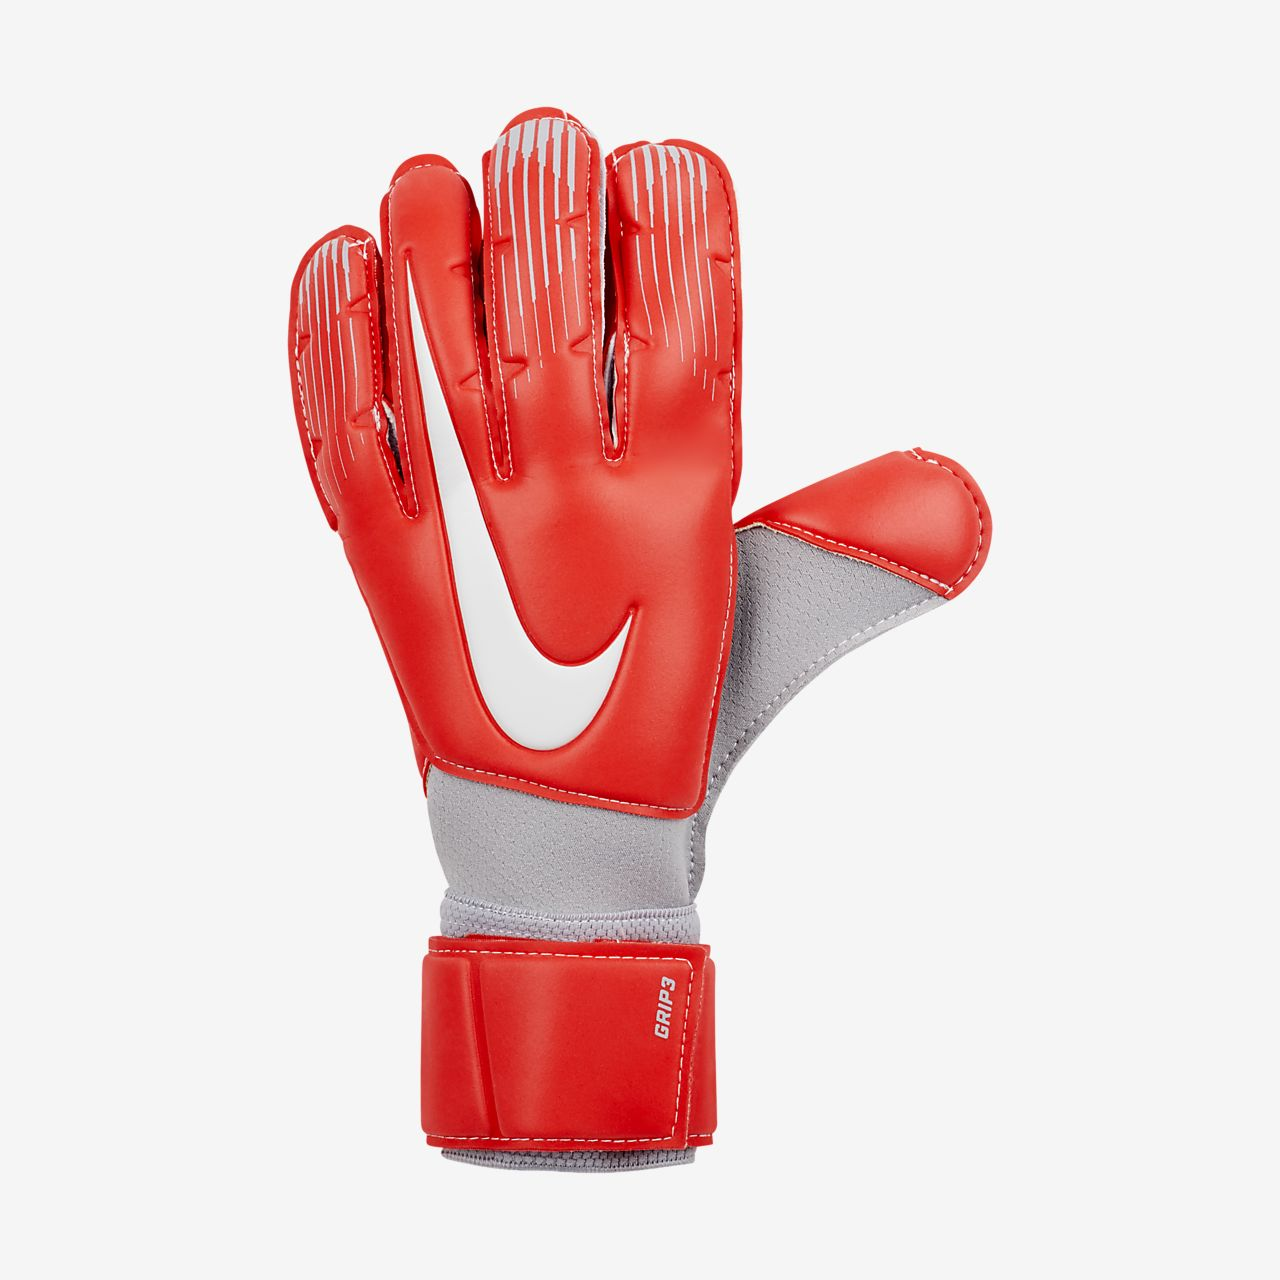 Nike Grip3 Goalkeeper Guants de futbol